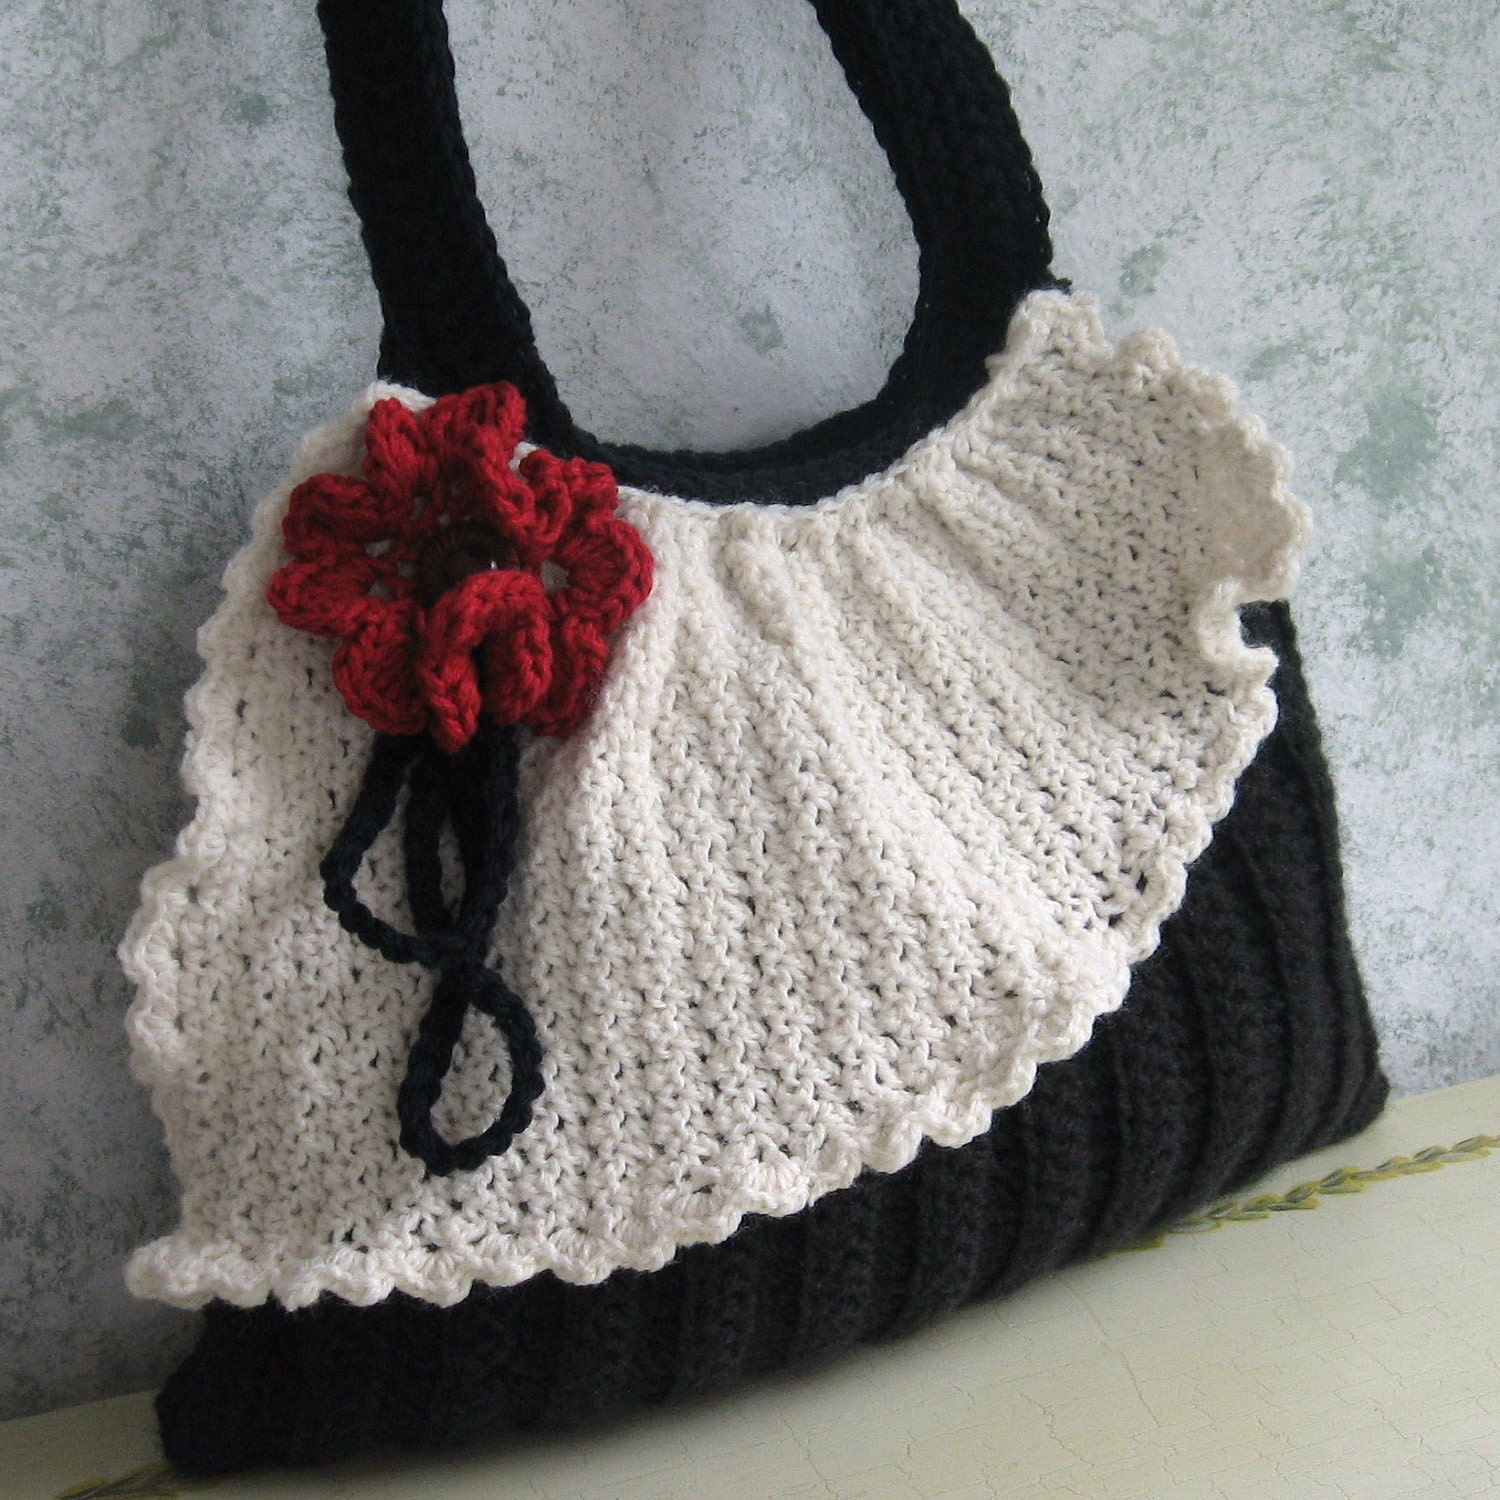 Designer Crochet Handbags : Crochet Purse Pattern Pleated Bag With Drape And by kalliedesigns